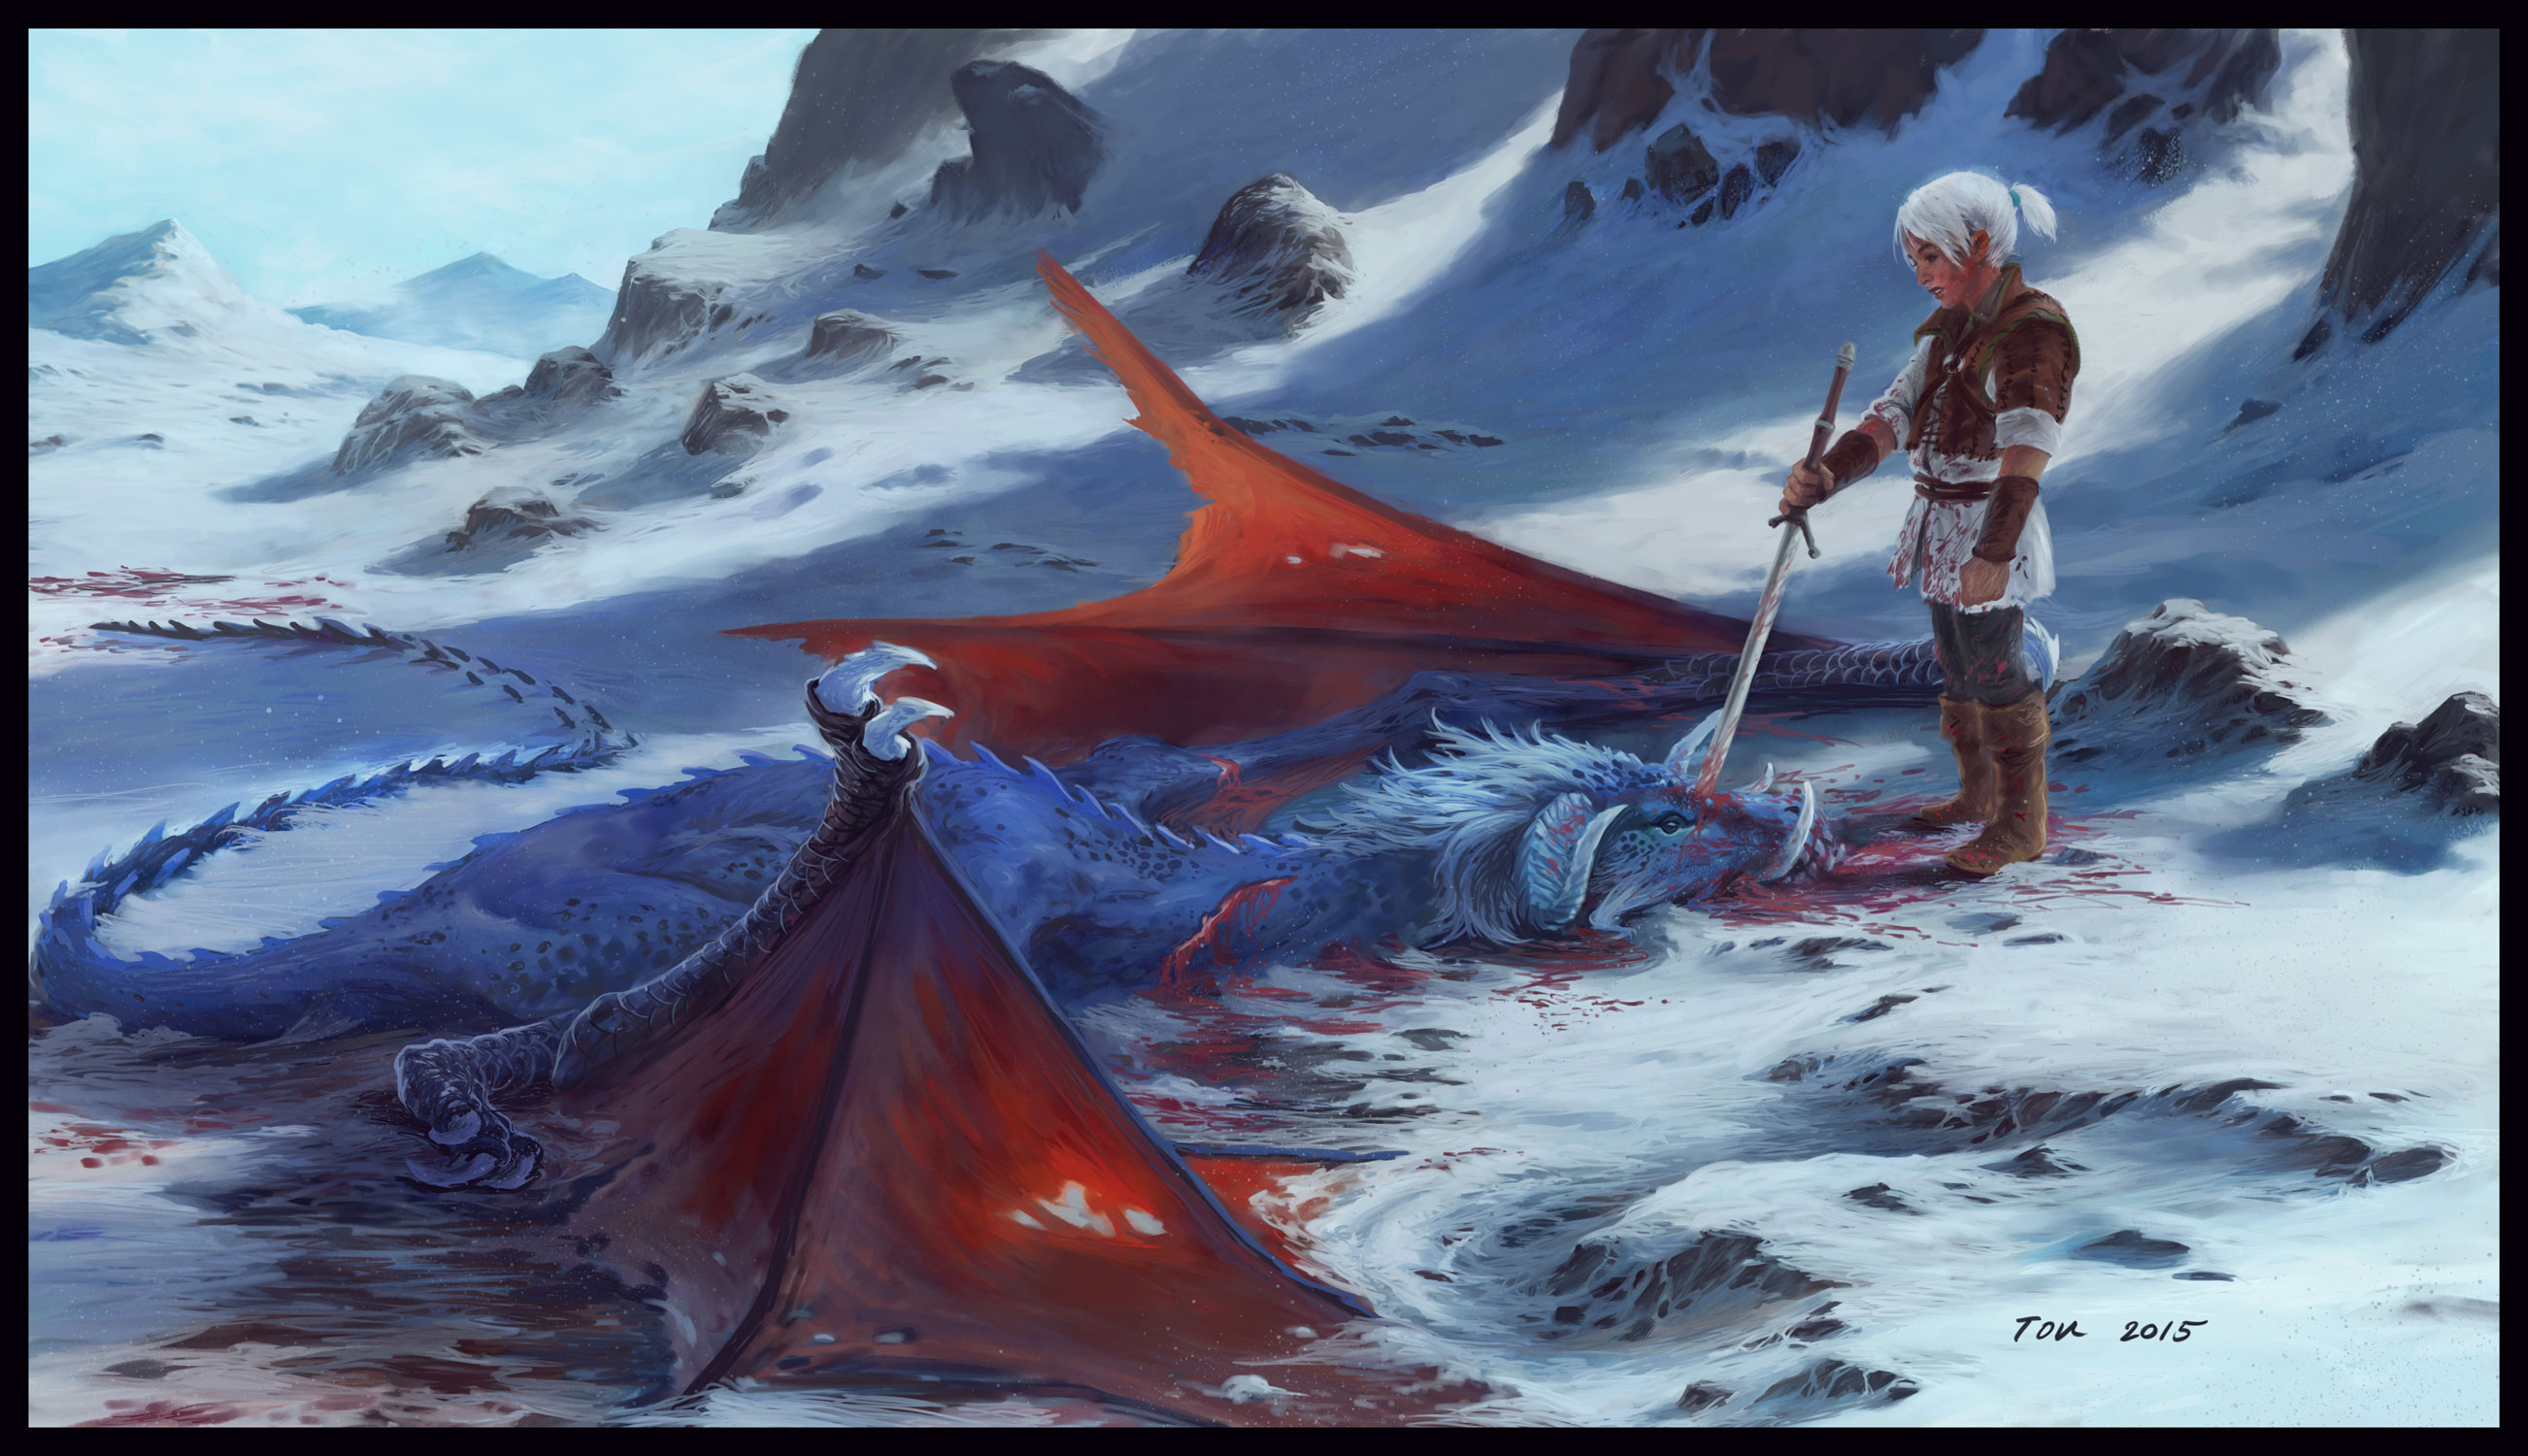 https://orig00.deviantart.net/e999/f/2015/146/b/4/witcher___first_blood_by_studiotou-d8uvkag.jpg